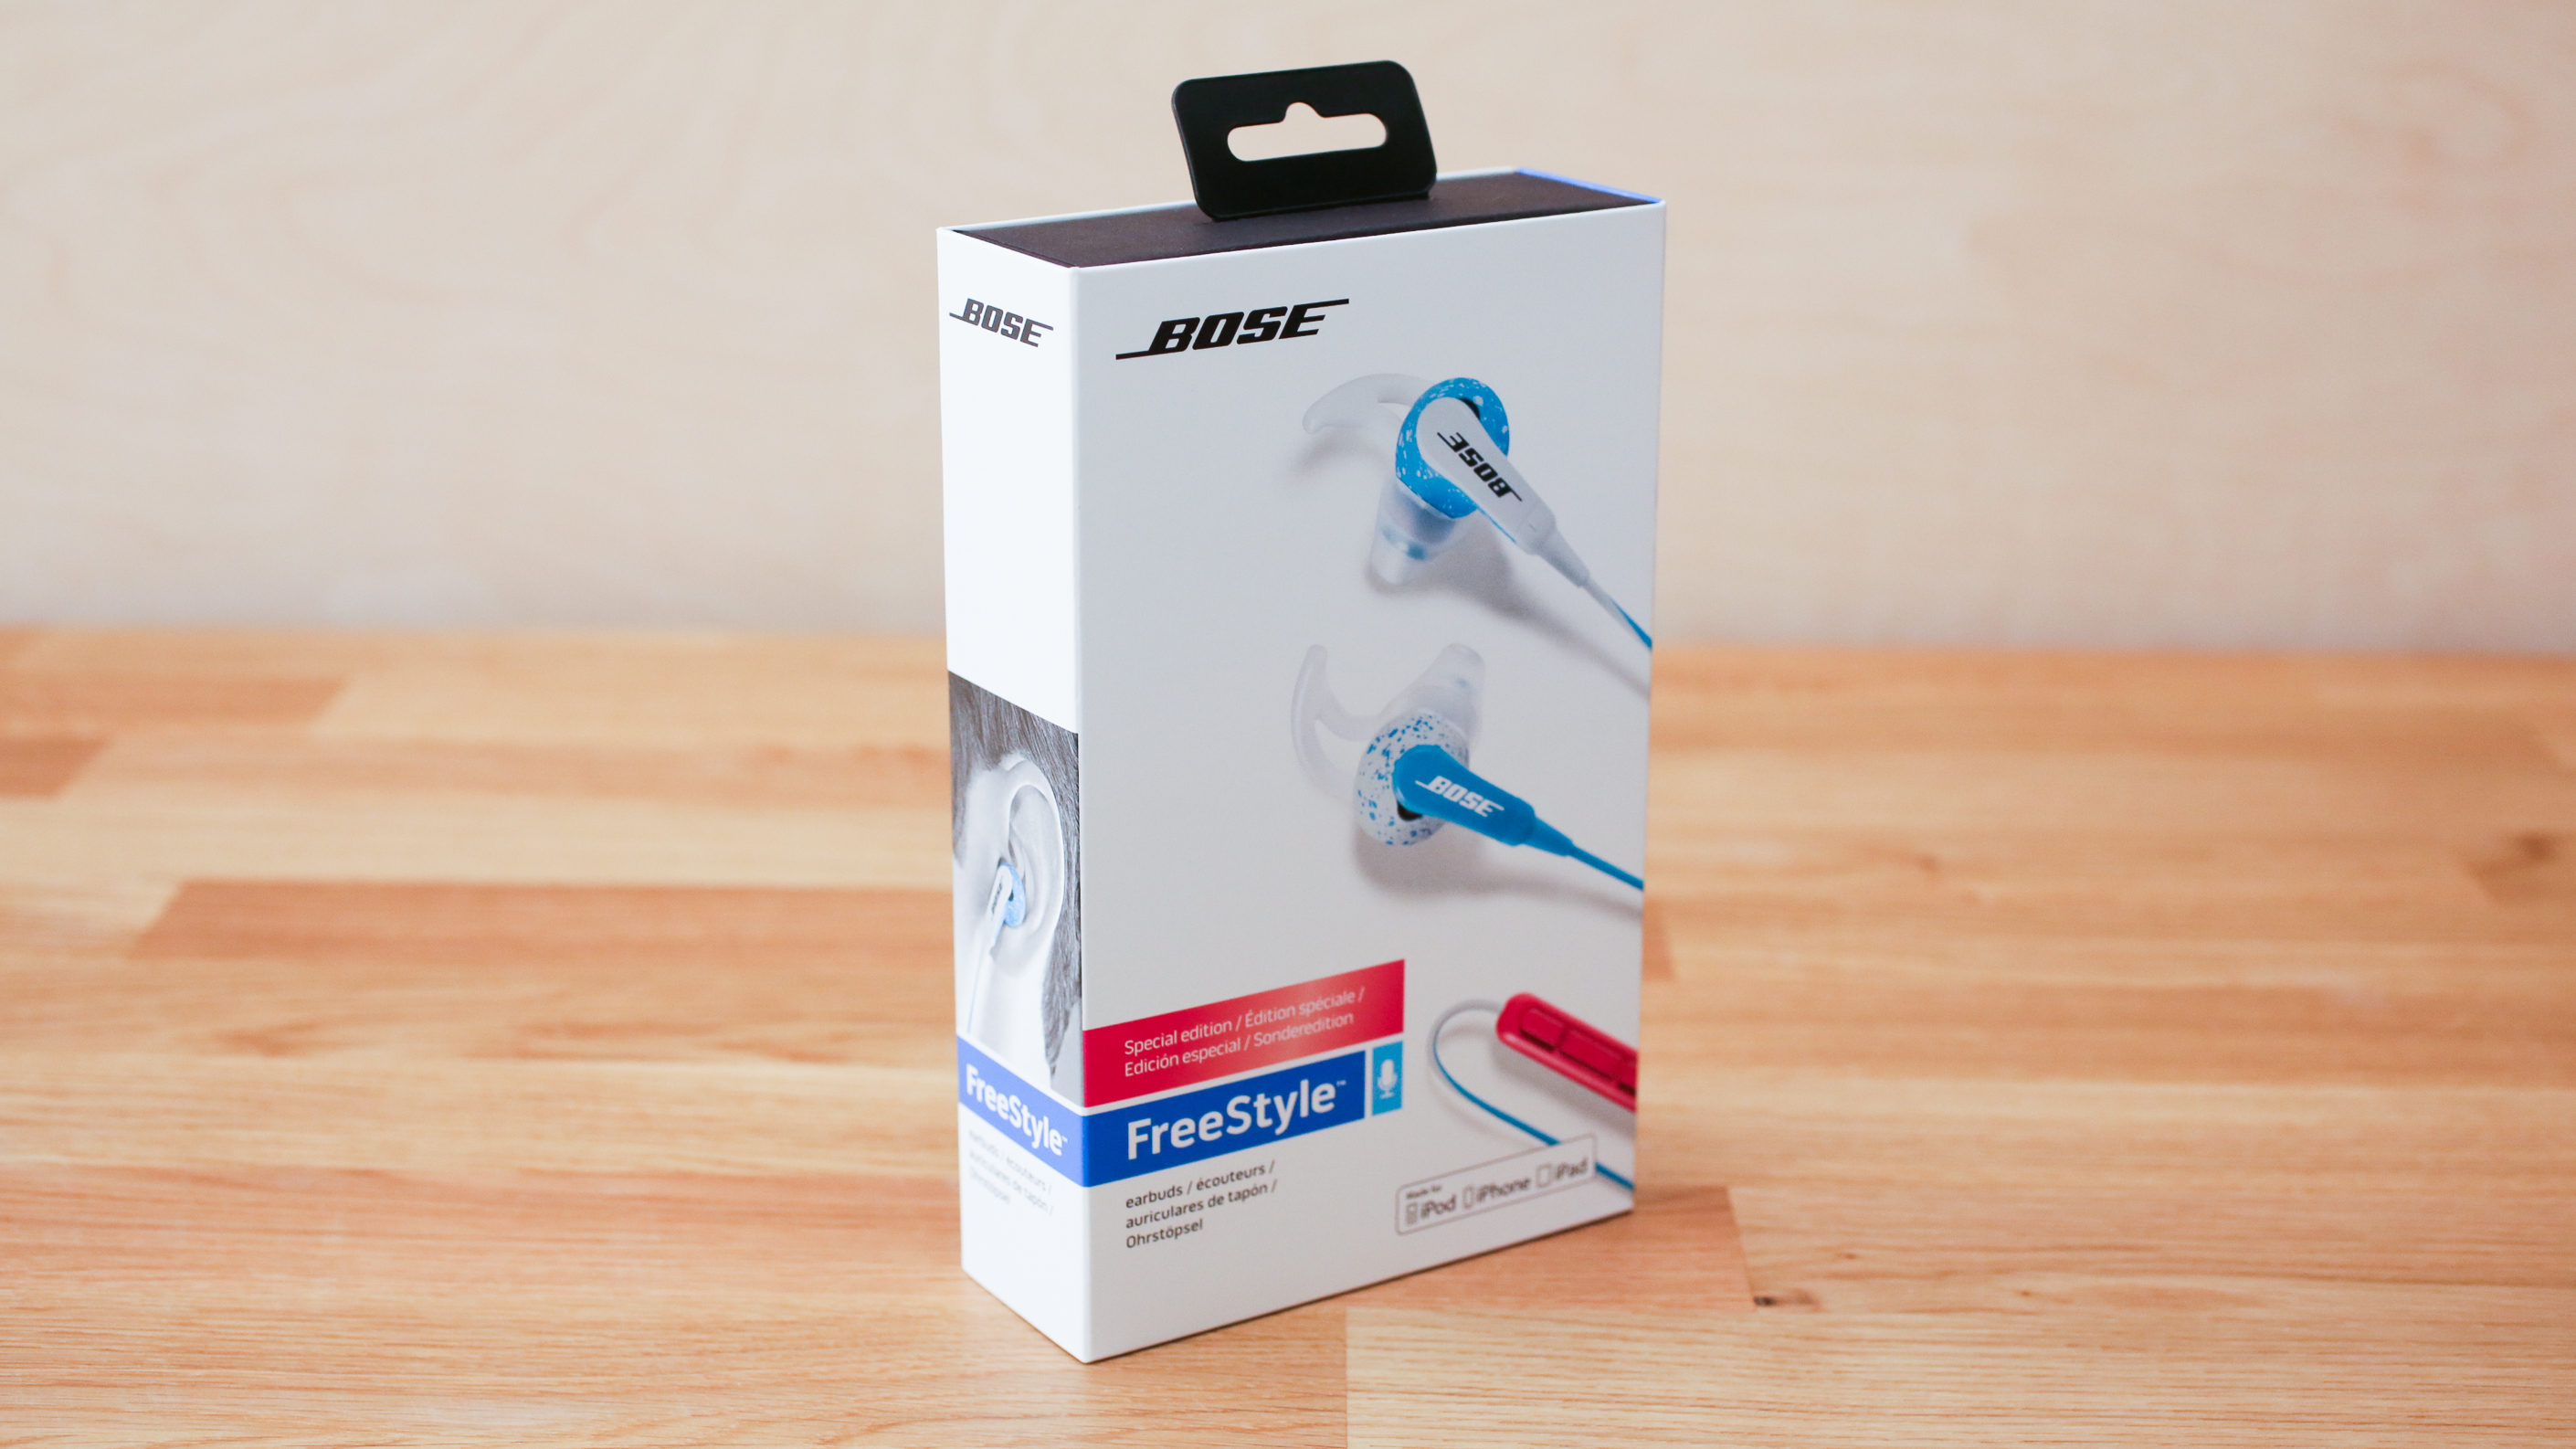 01bose-freestyle-earbuds-product-photos.jpg